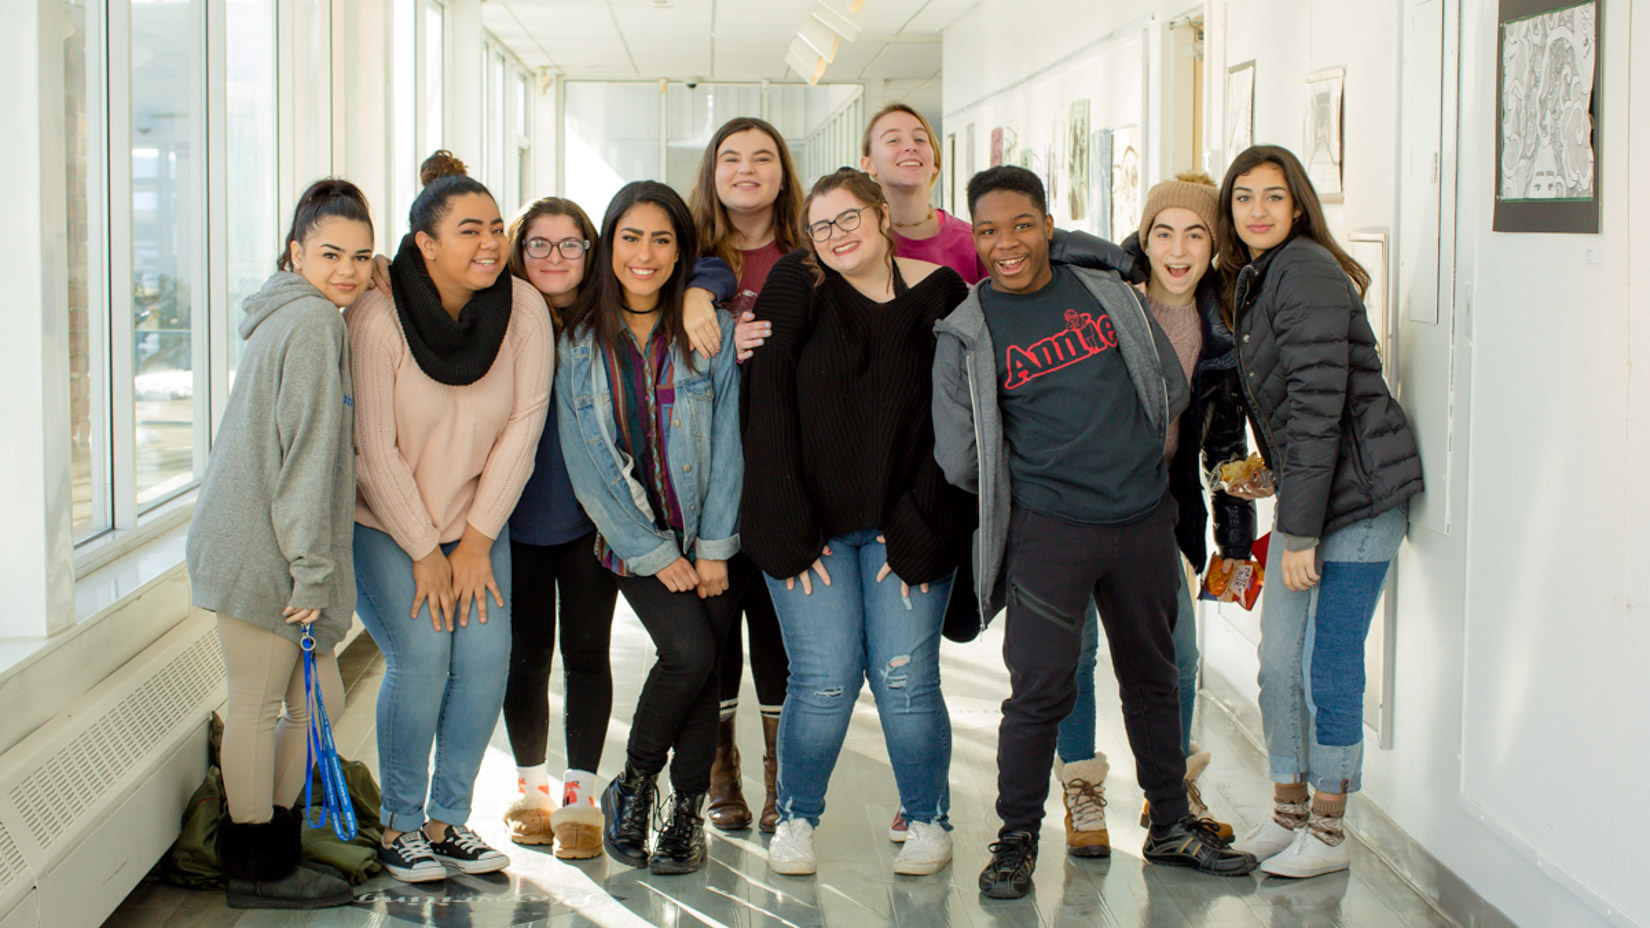 Group of students smiling together in the hallway